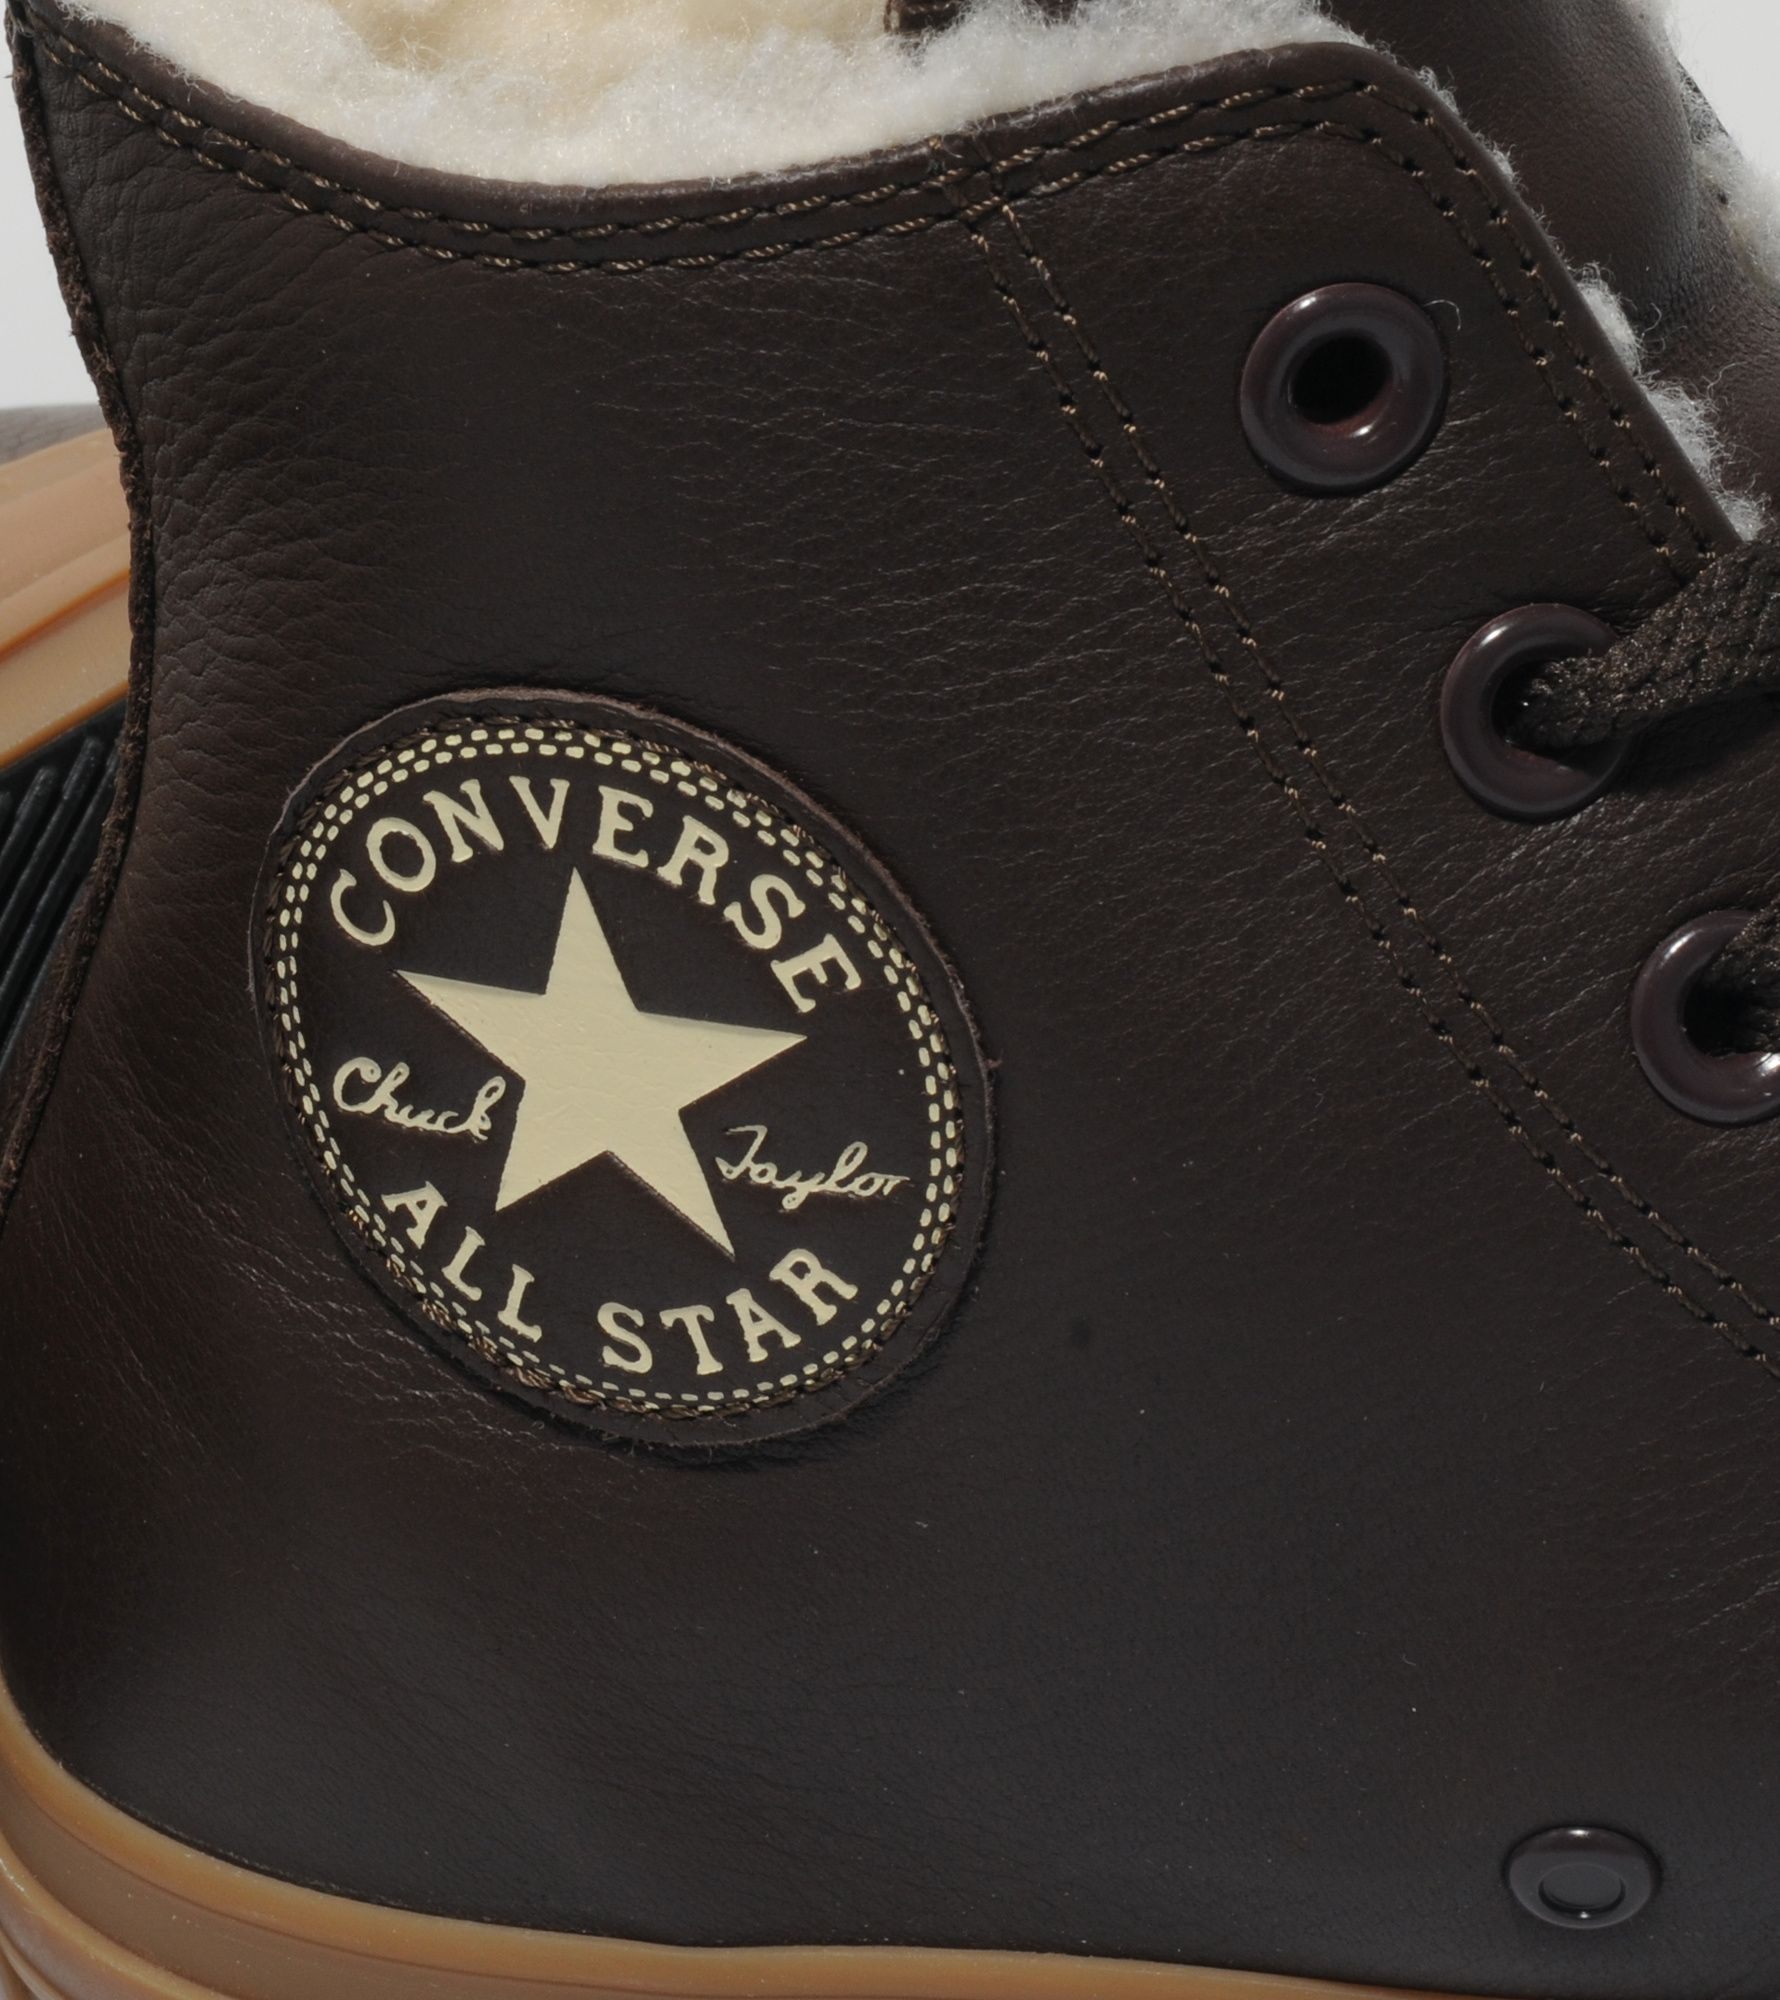 Converse All Star Hi Warm